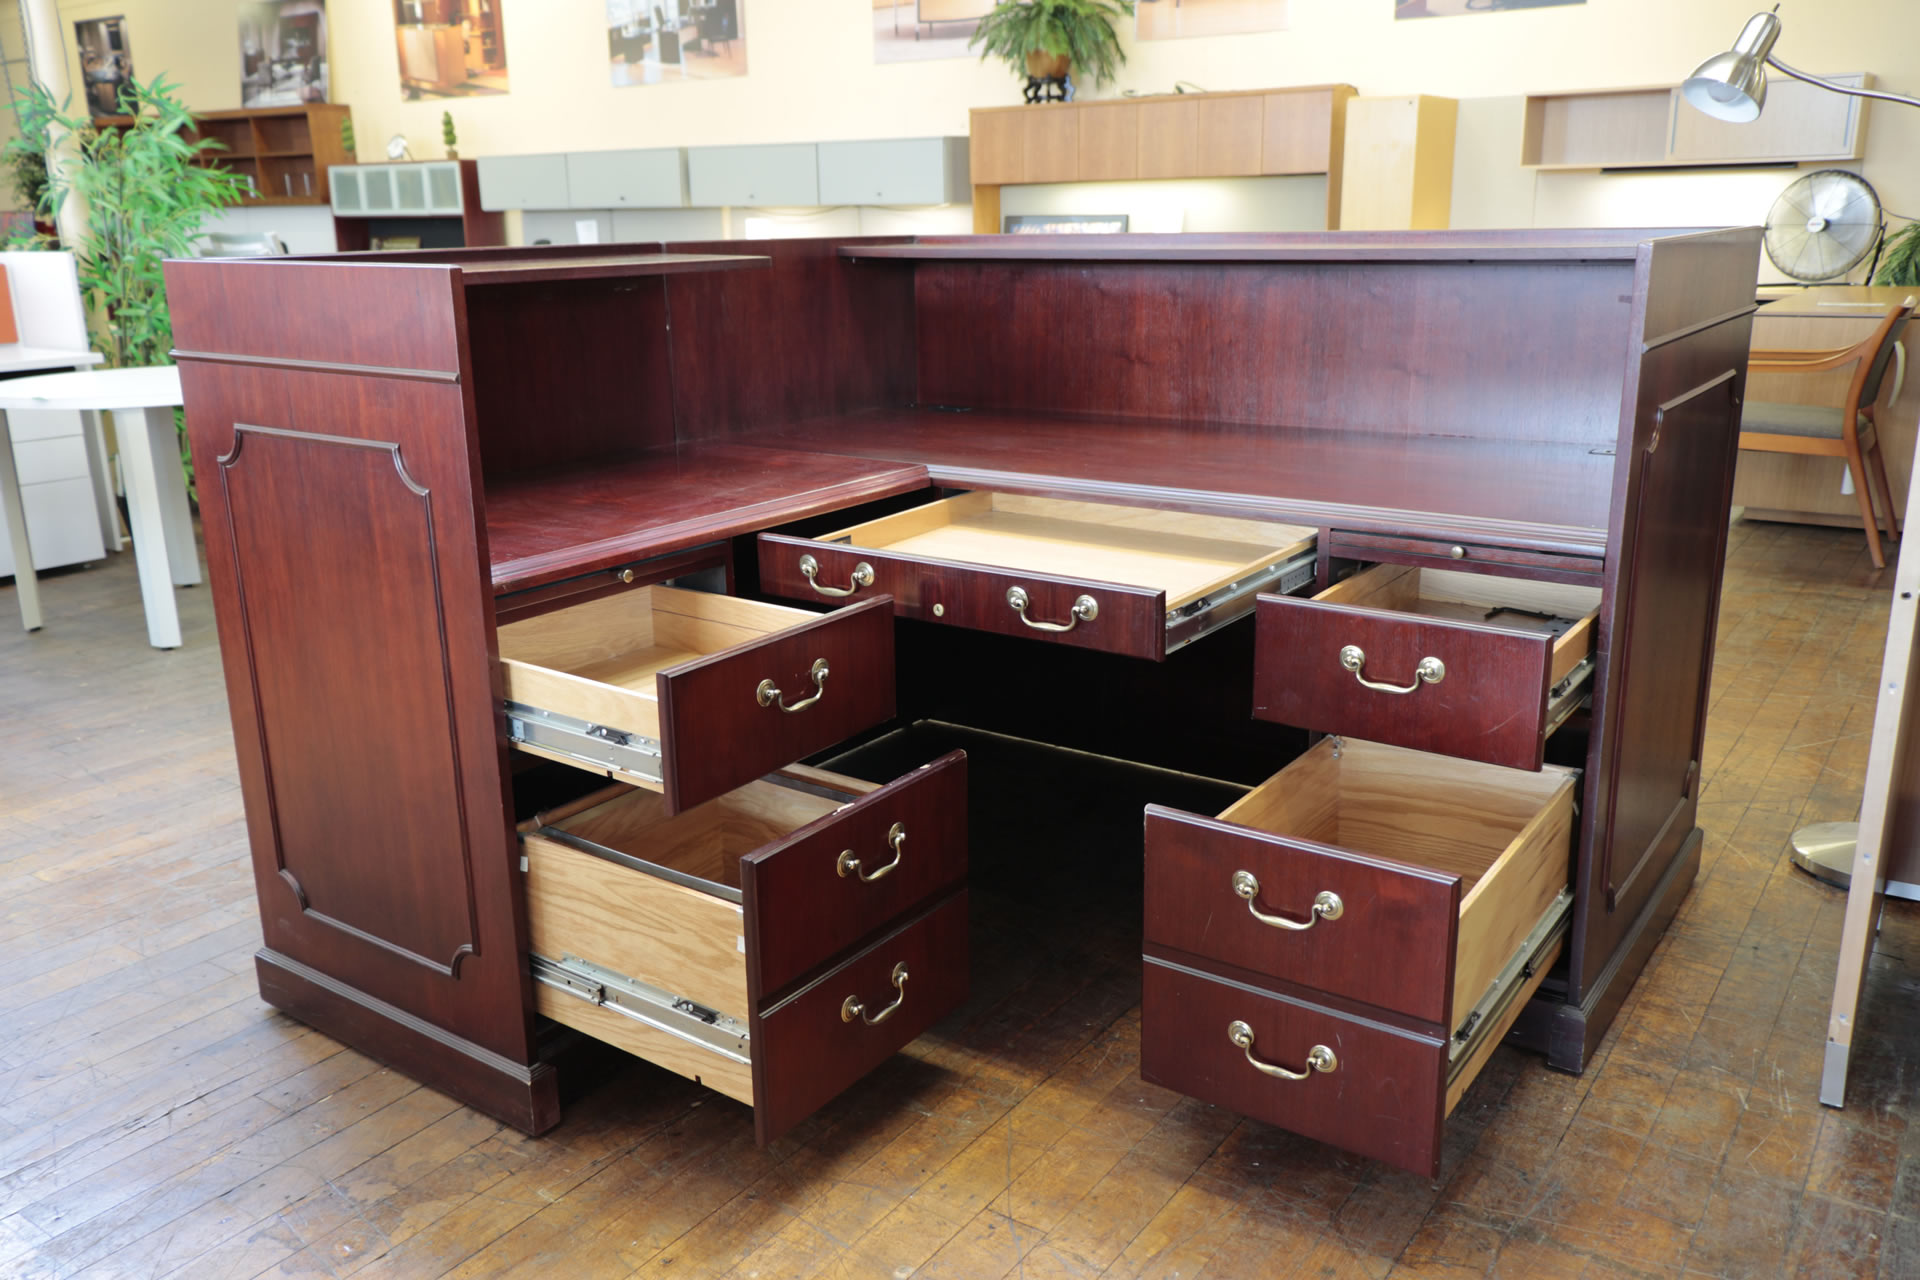 peartreeofficefurniture_peartreeofficefurniture_mg_4568.jpg